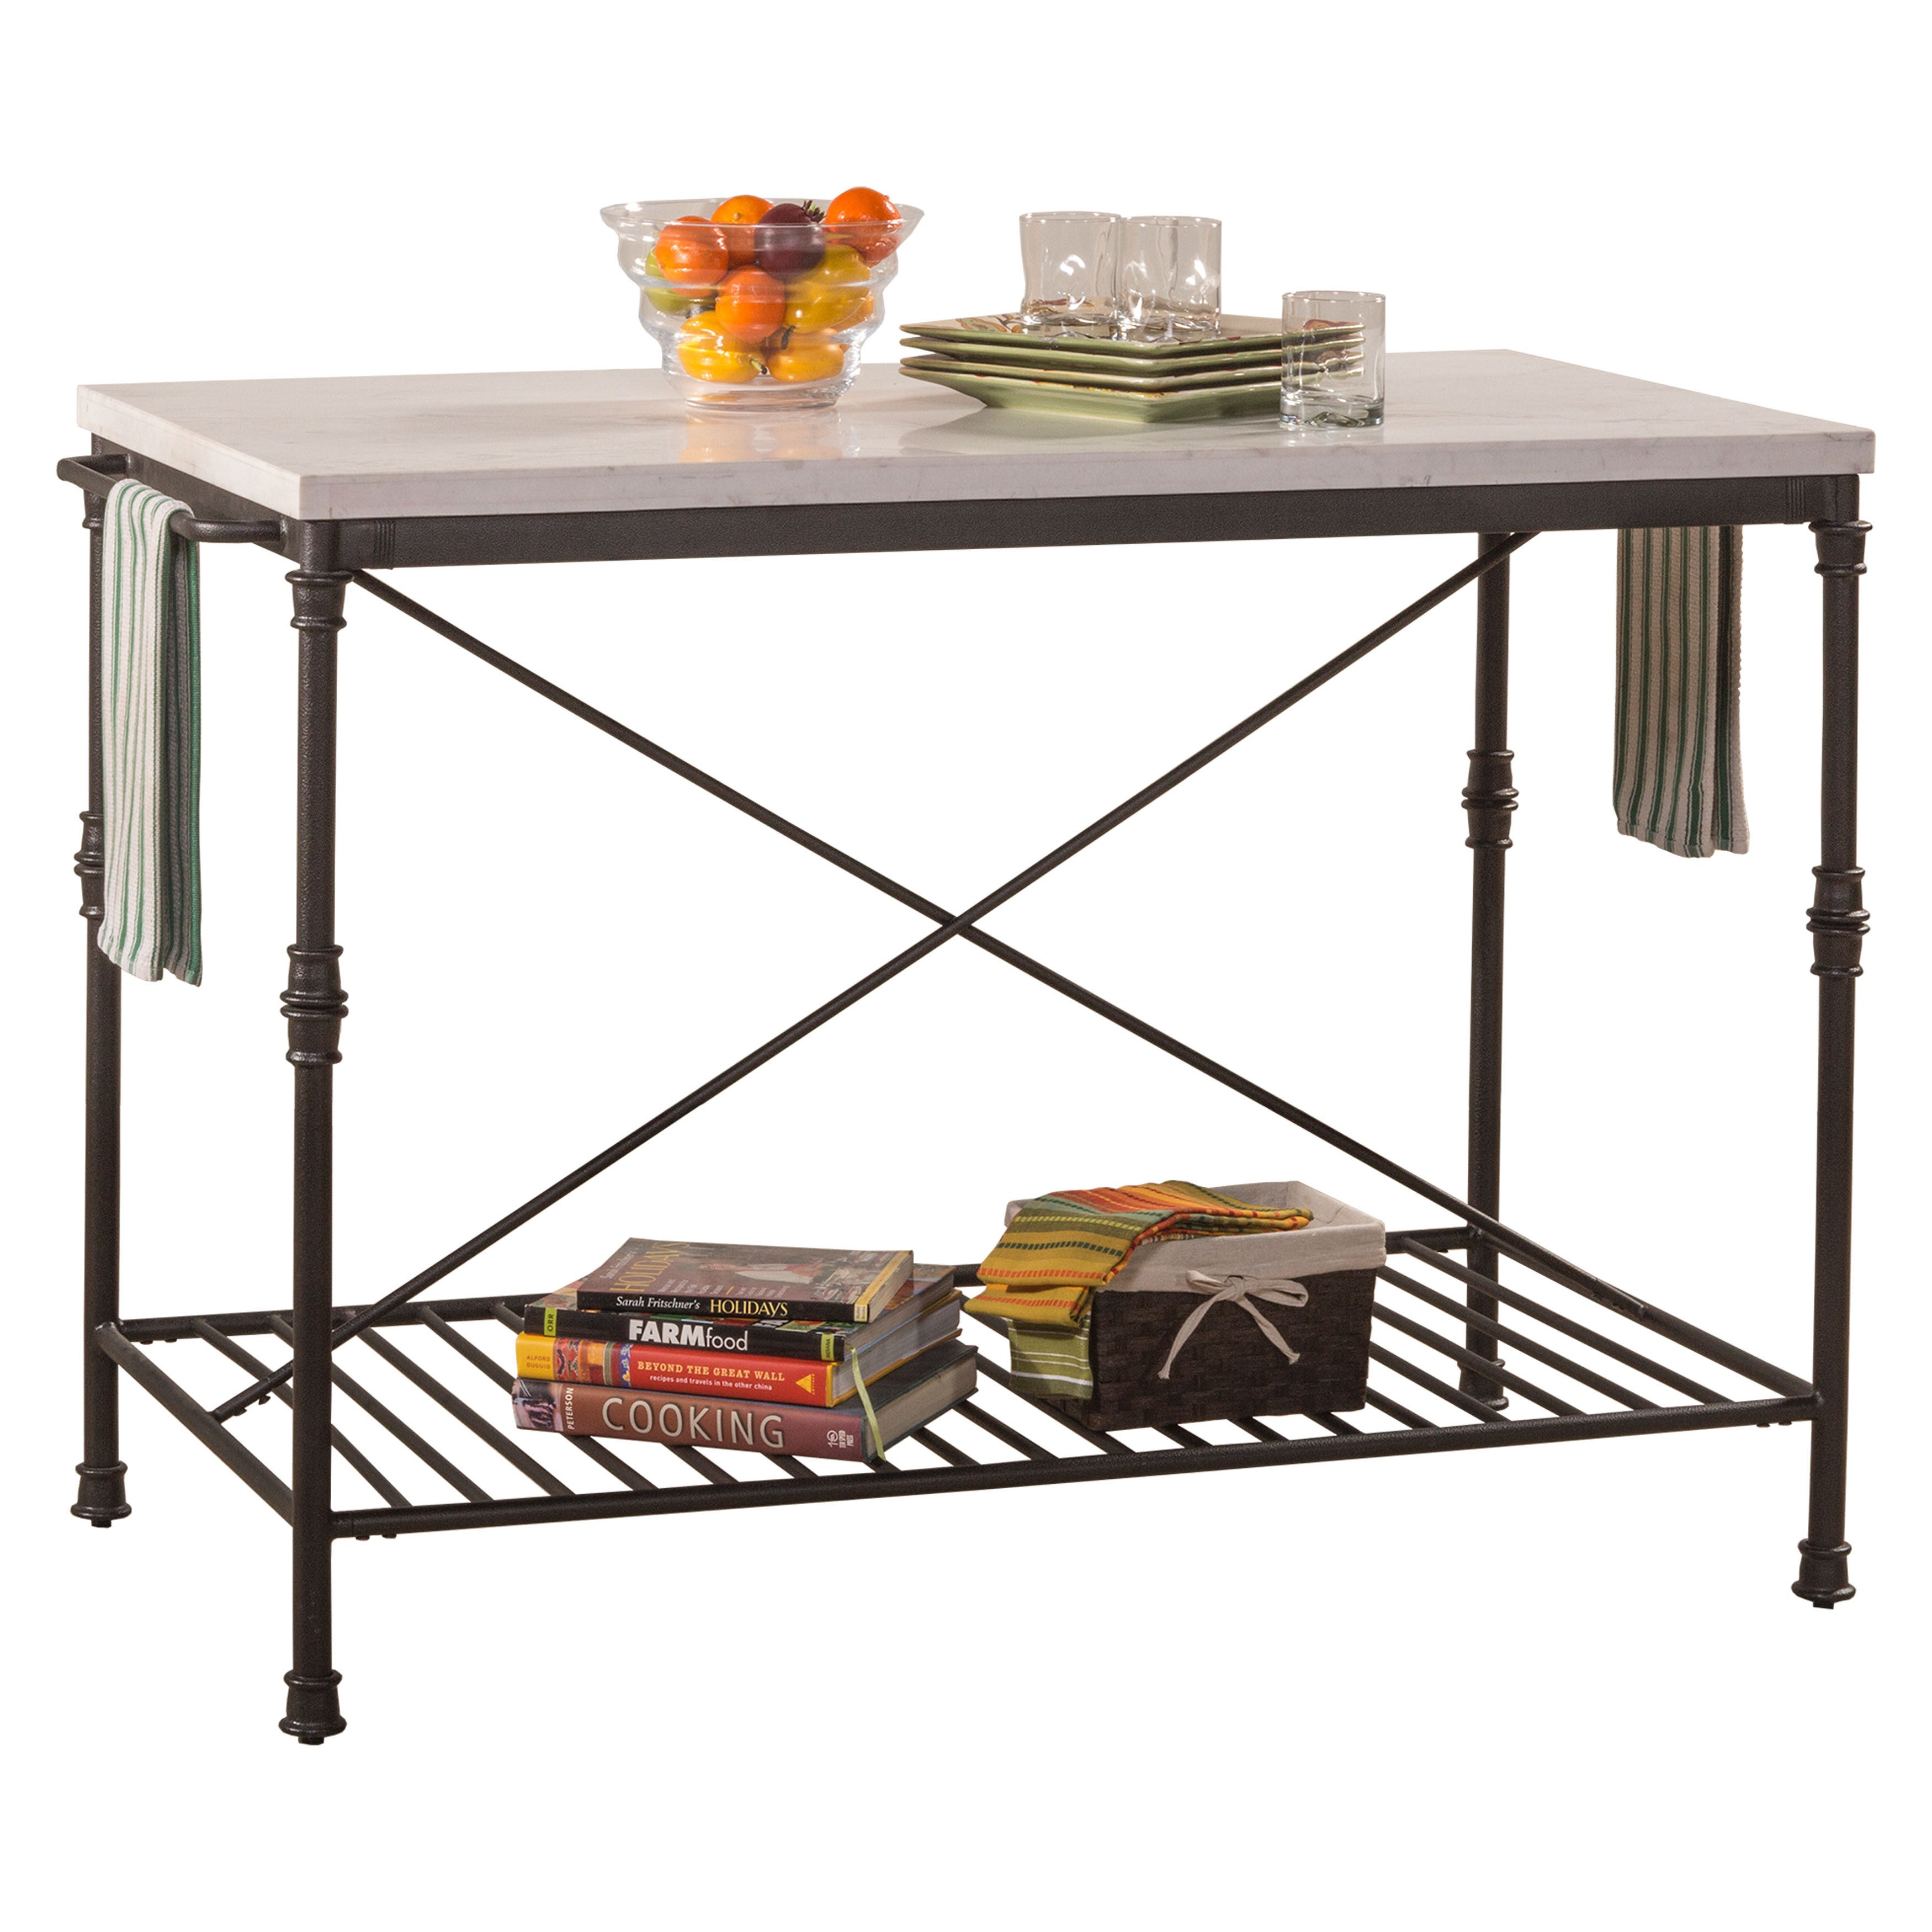 on tables wheels buy portable of stainless stand kitchen full cheap metal island blue wire utility size cart